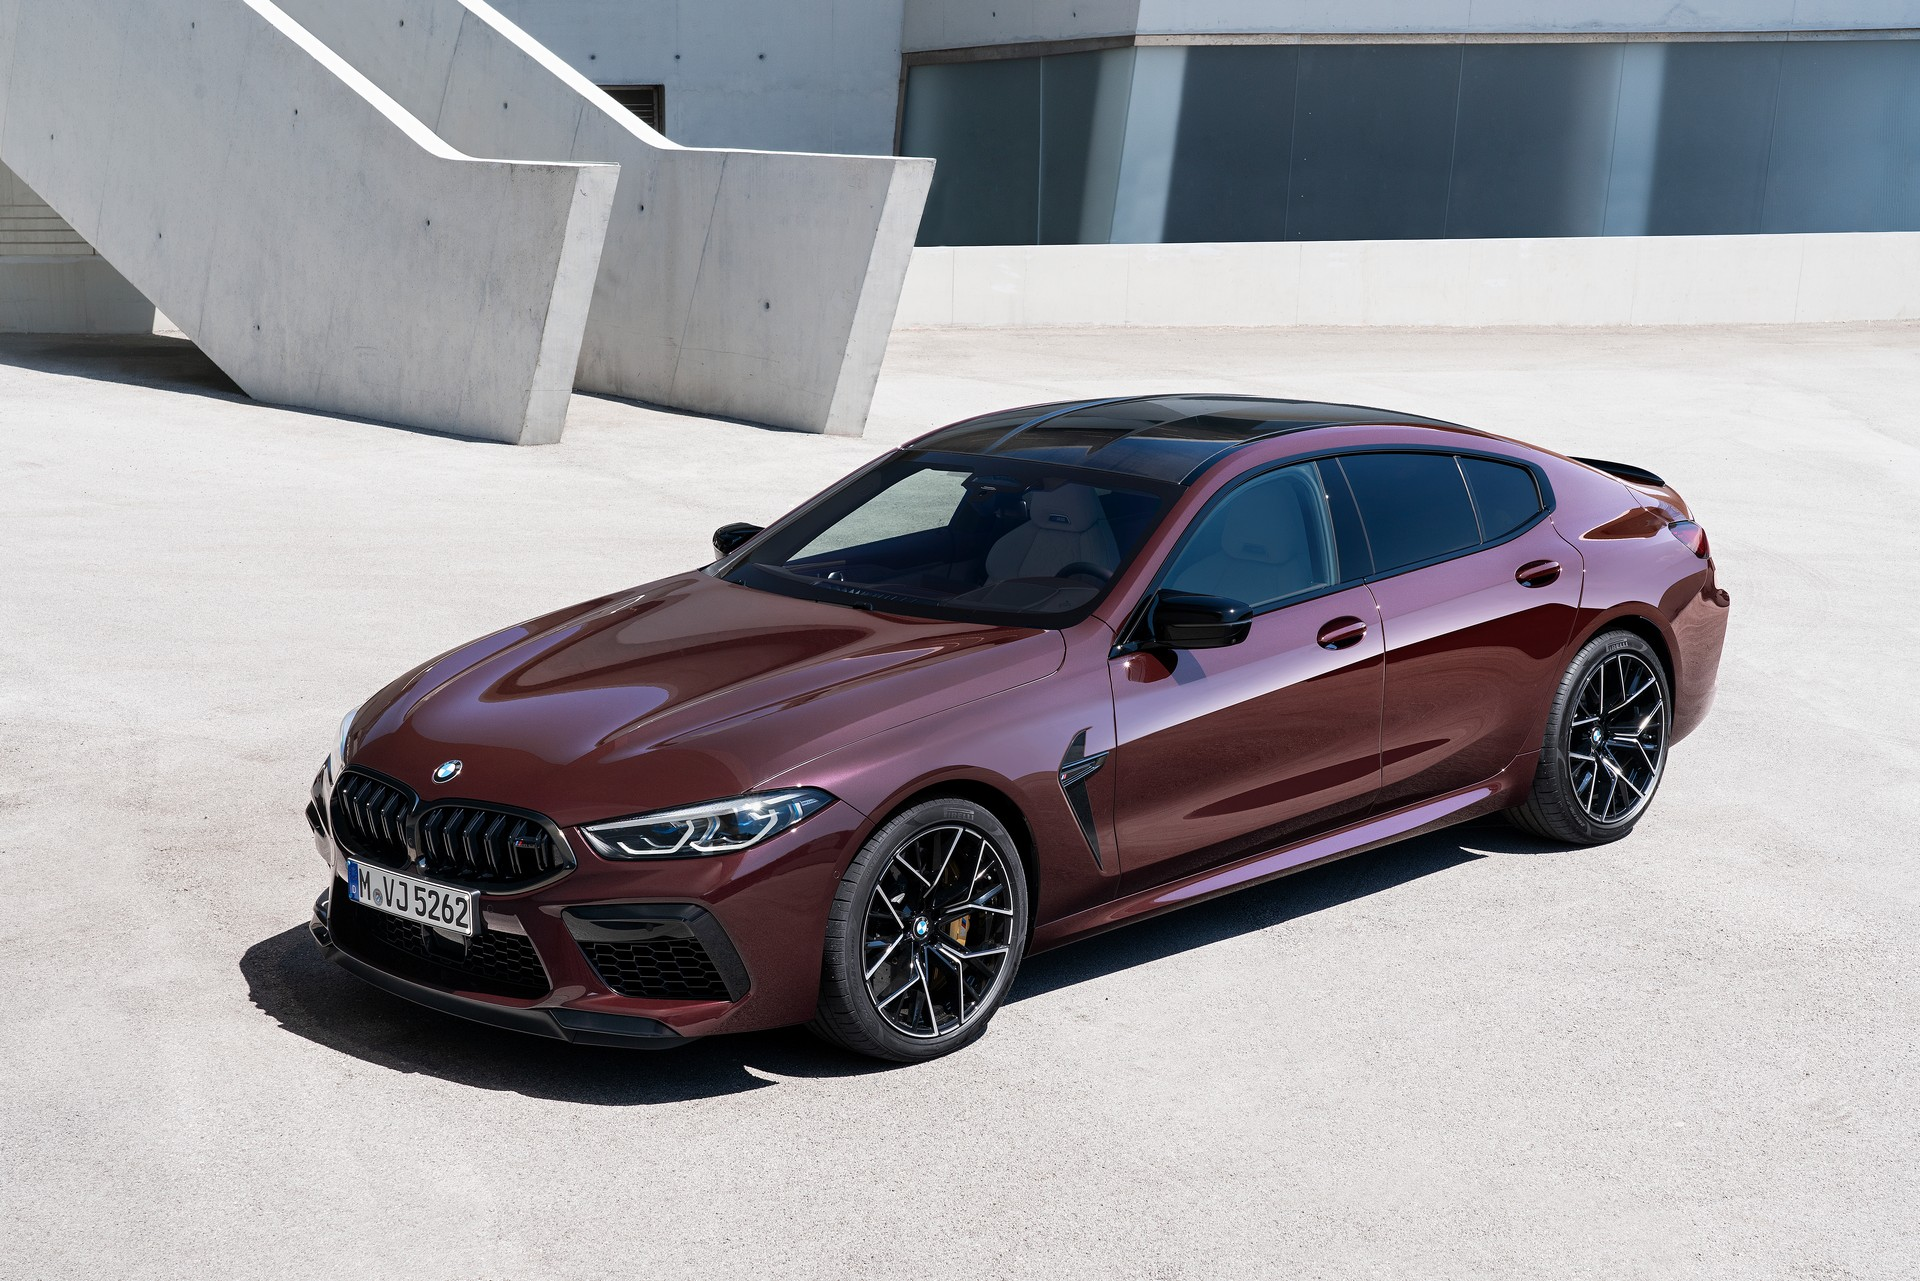 BMW M8 Gran Coupe 2020